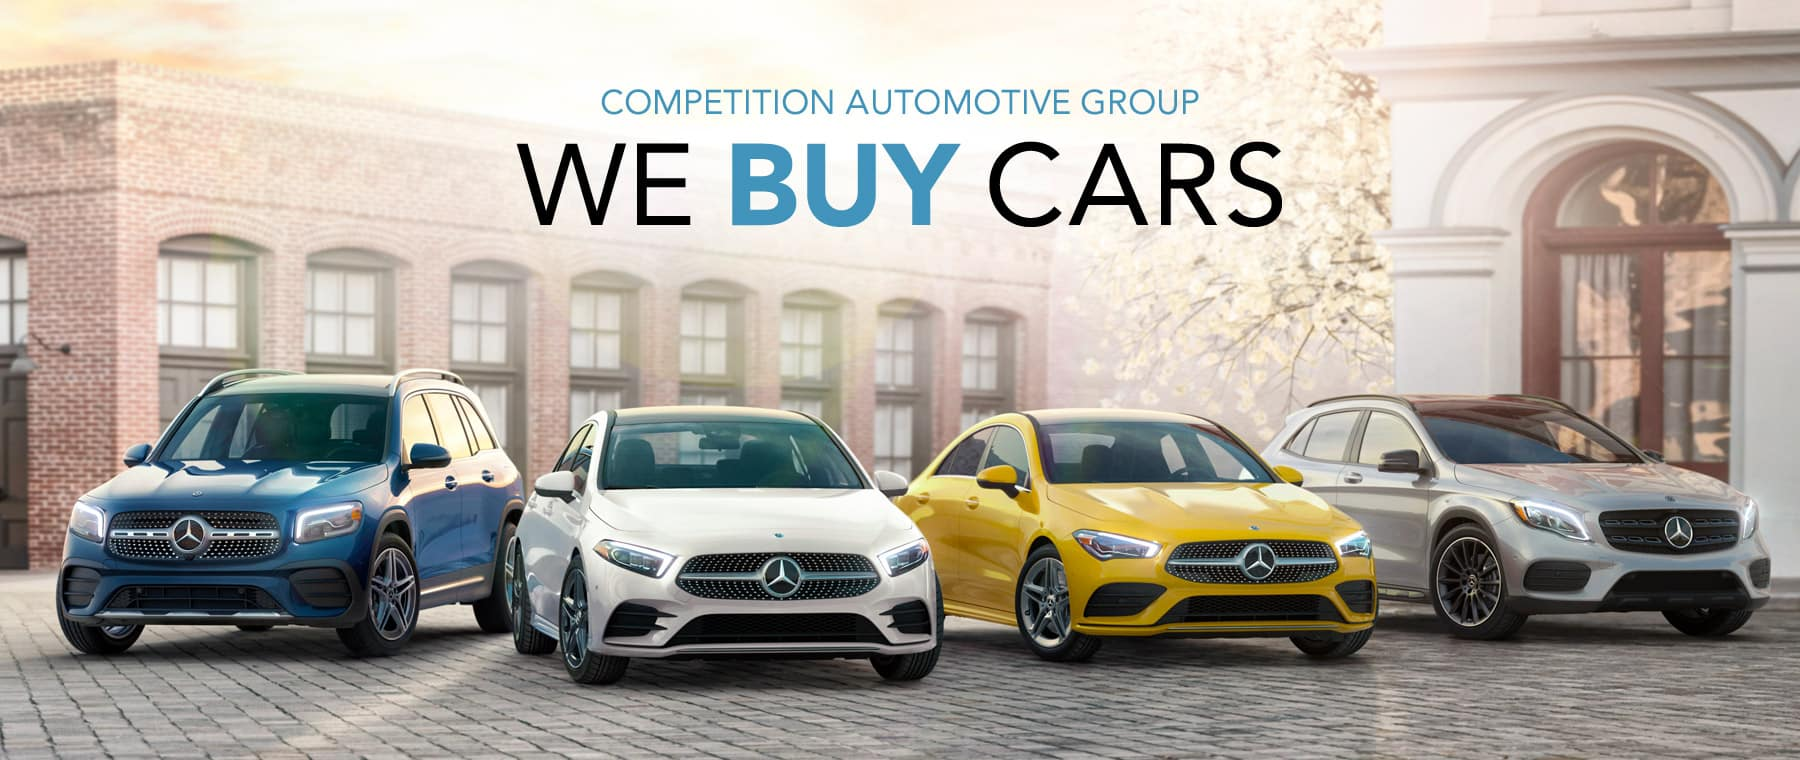 Homepage-Slider-MBH-We-Buy-Cars